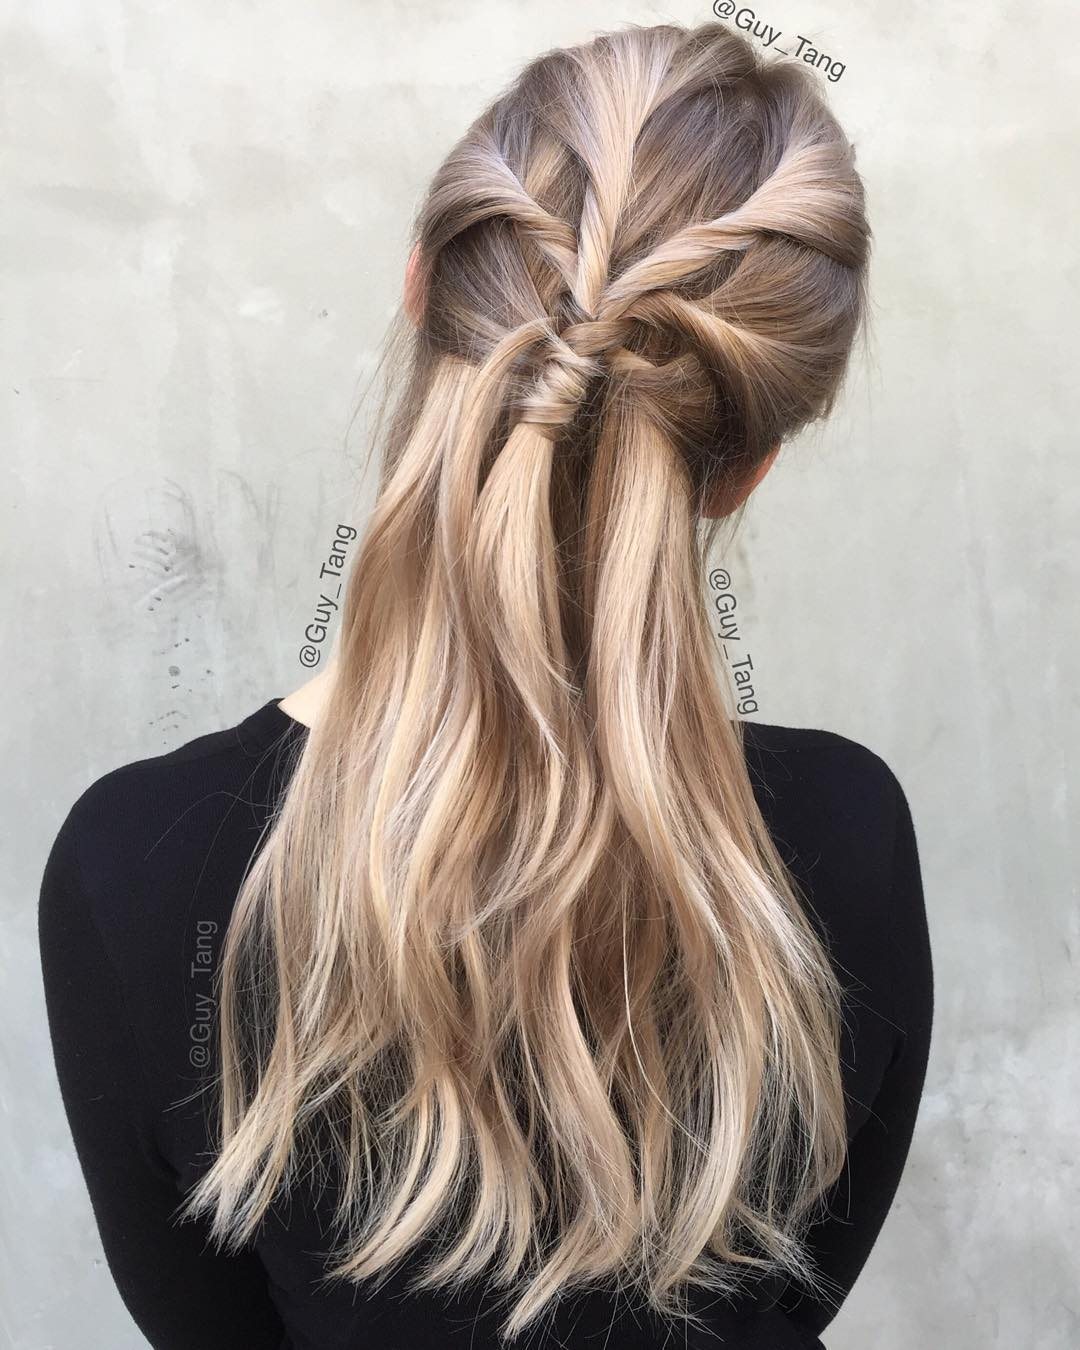 What are the creative hairstyles for long hair